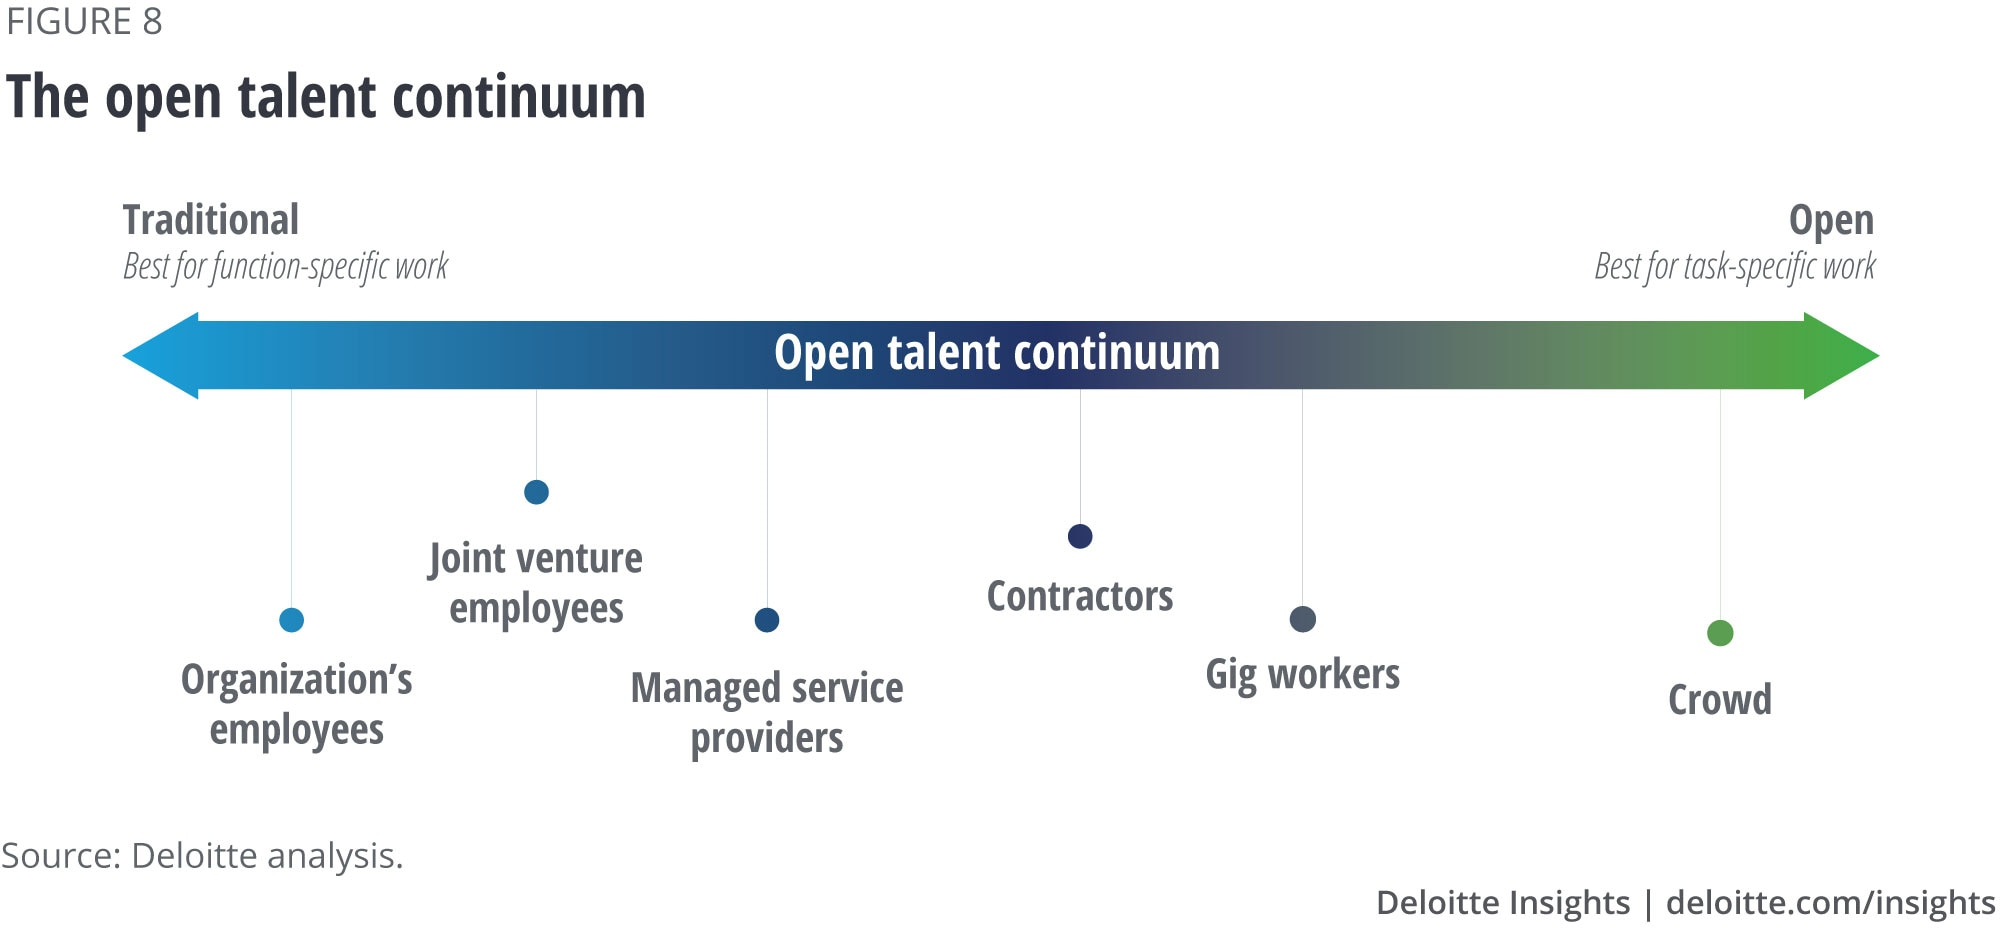 The open talent continuum